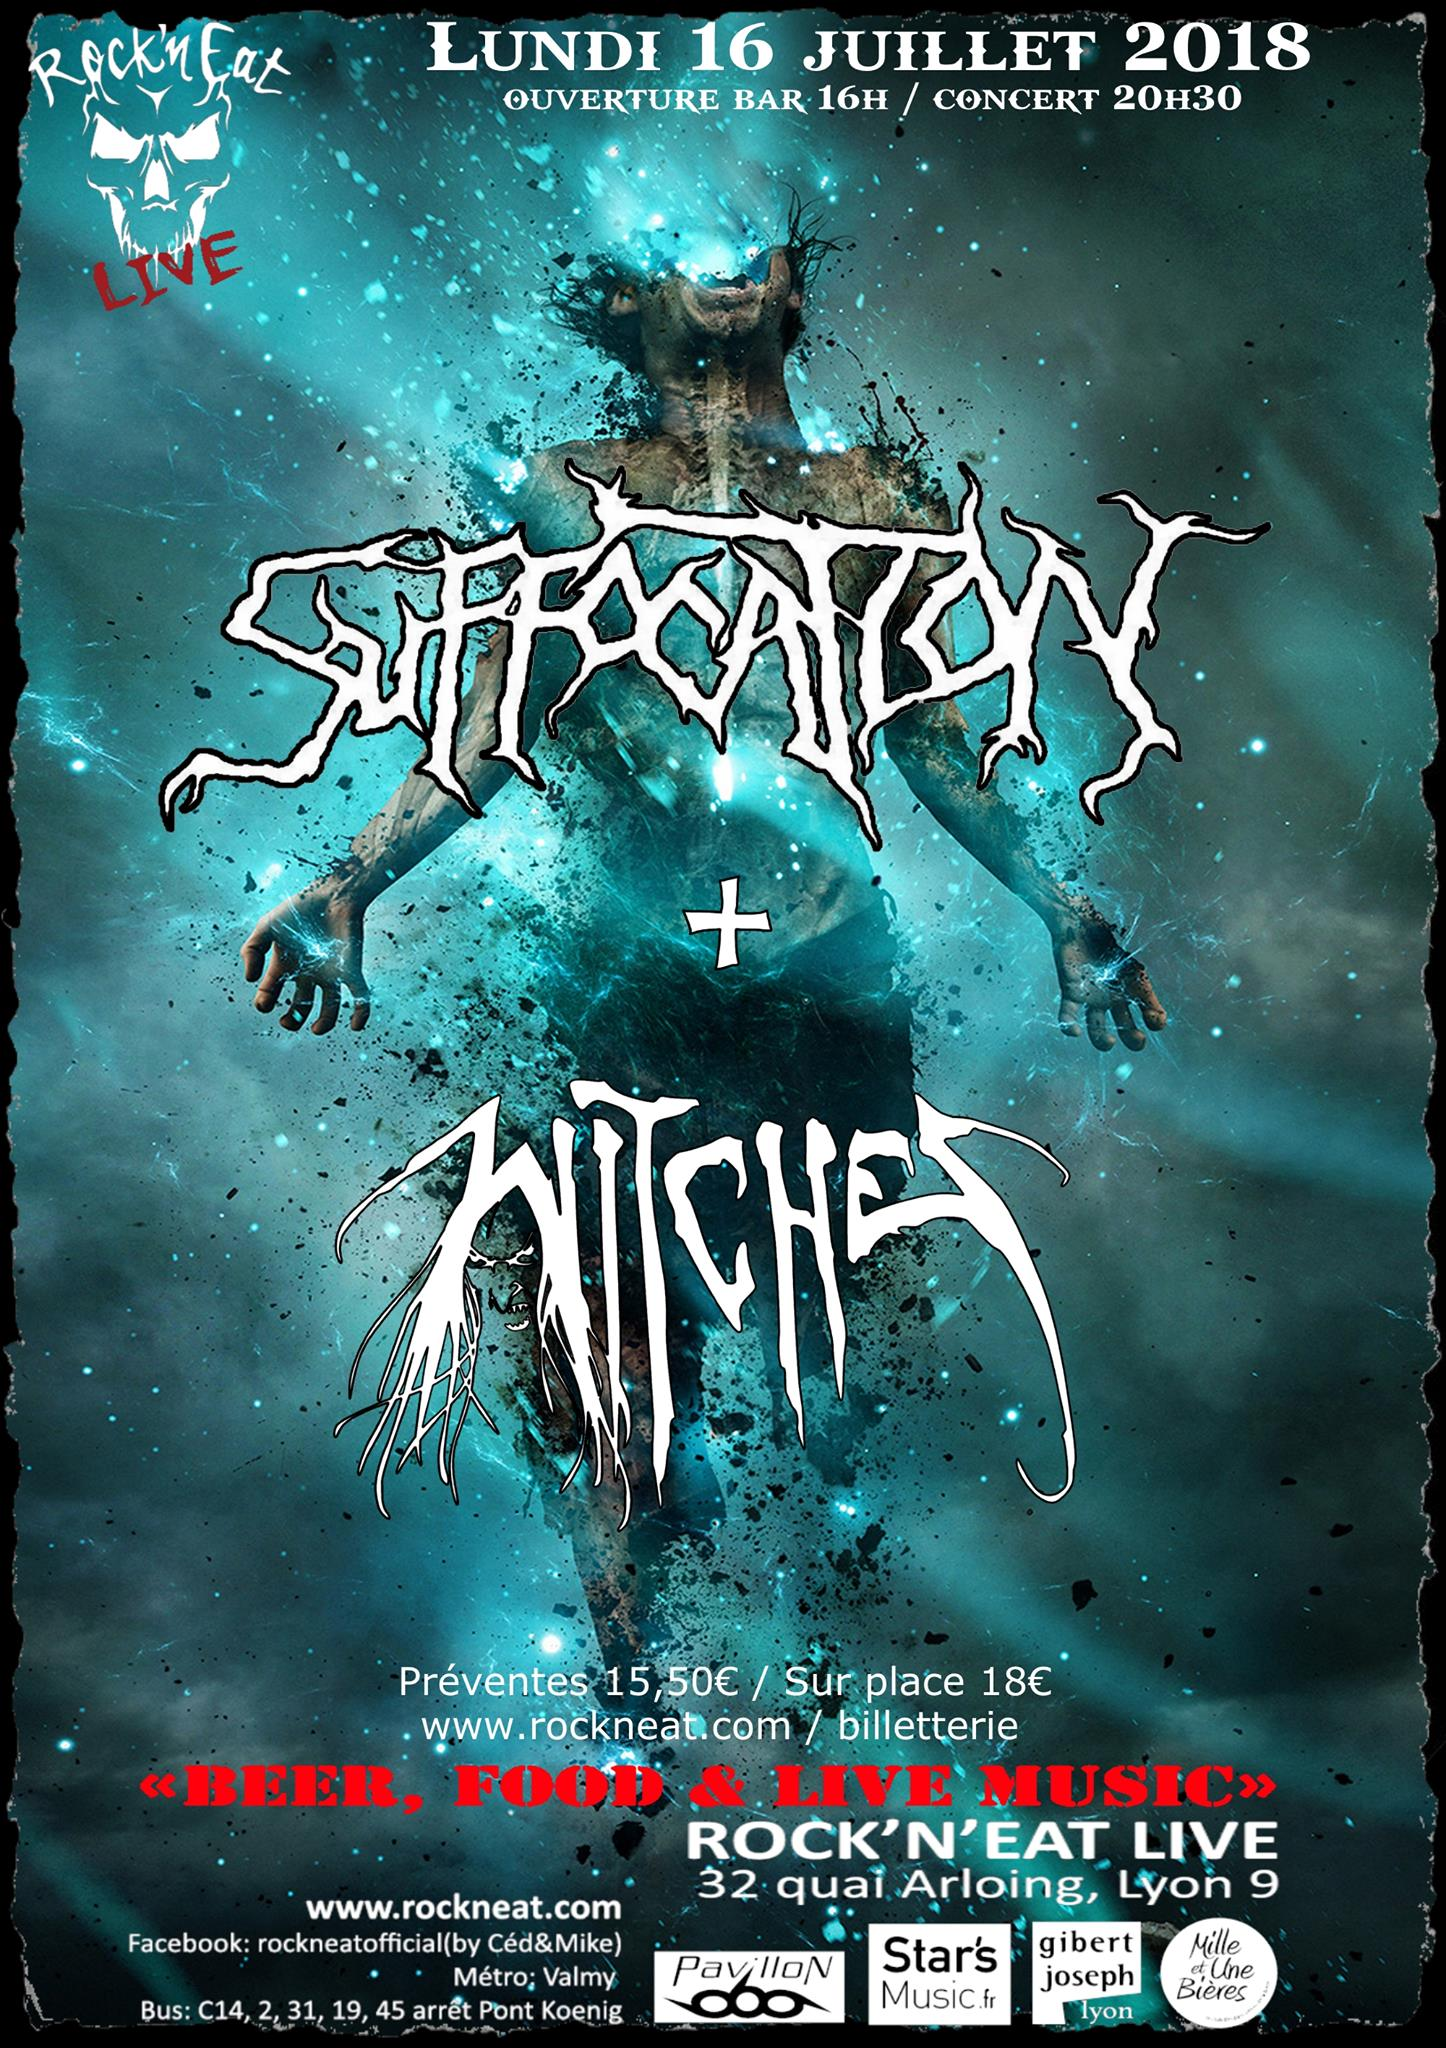 Witches flyer Suffocation + Witches  @ Suffocation (Realm of Darkness European Tour: Part 2) / Witches Suffocating Summer Tour 2018 Rock n Eat Live Lyon, France